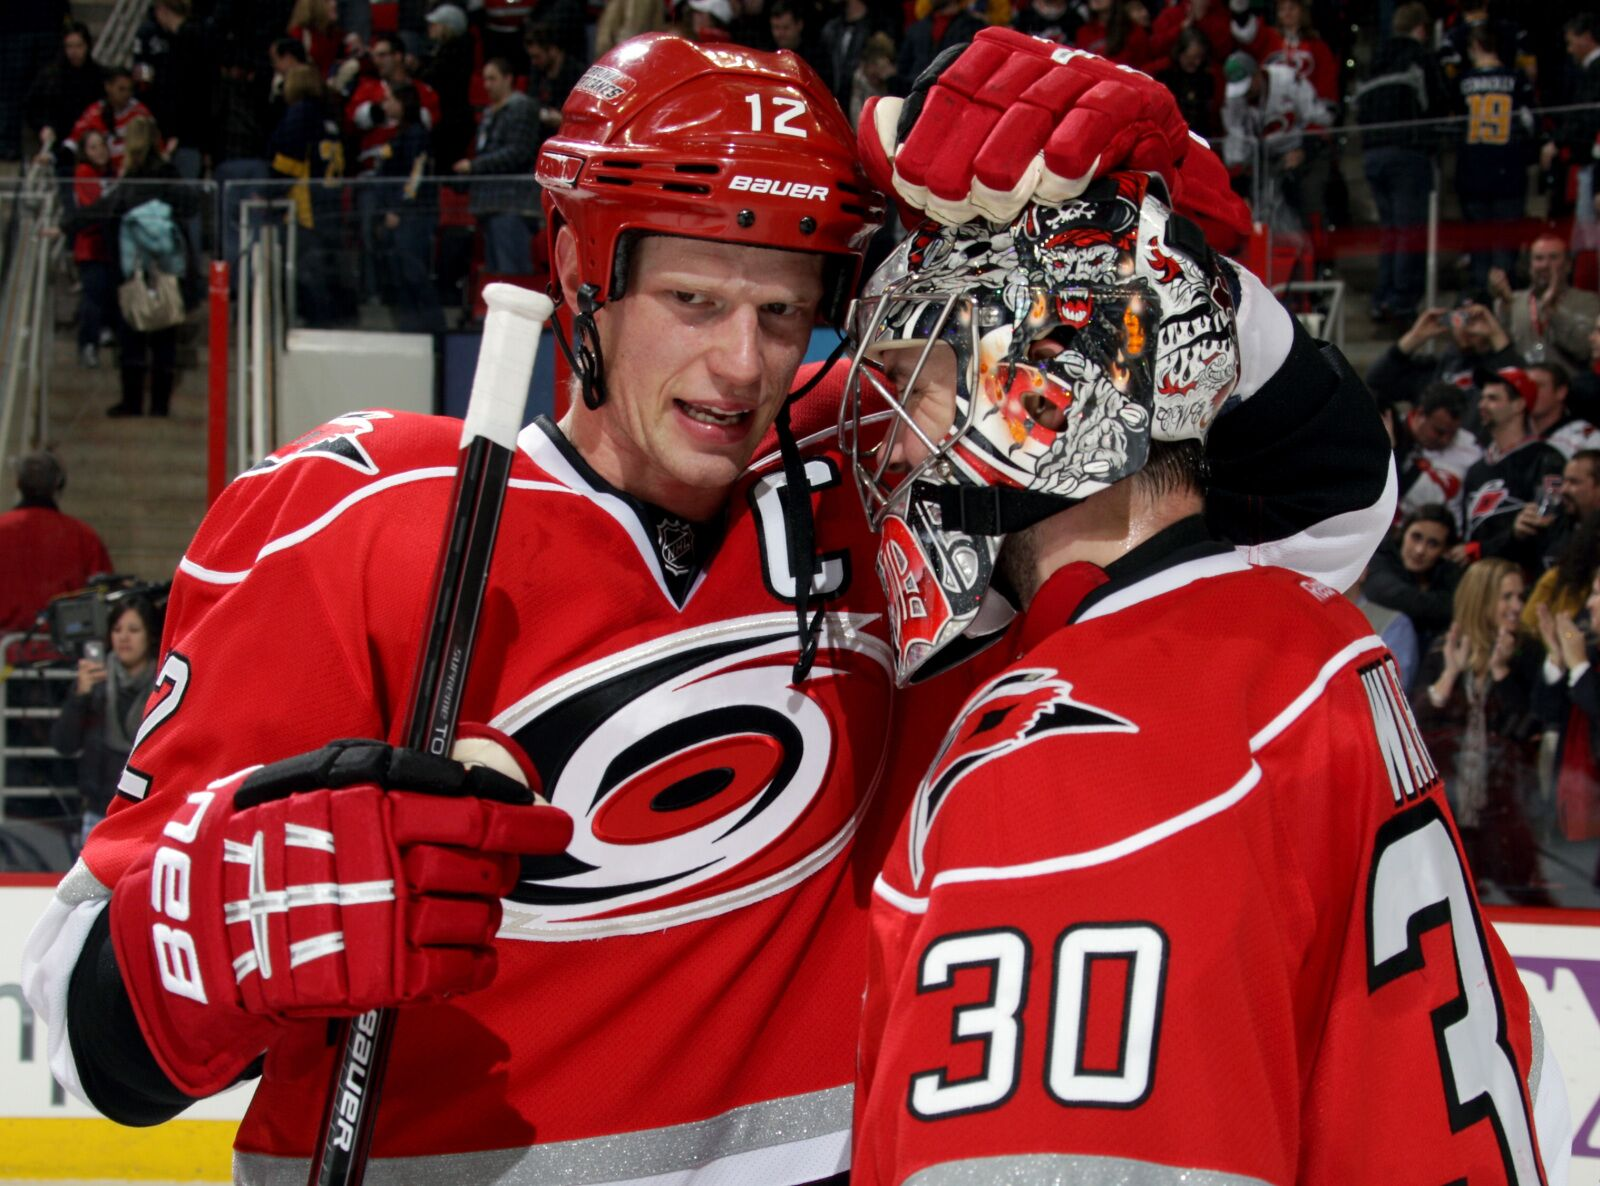 Should the Carolina Hurricanes Retire More Numbers?